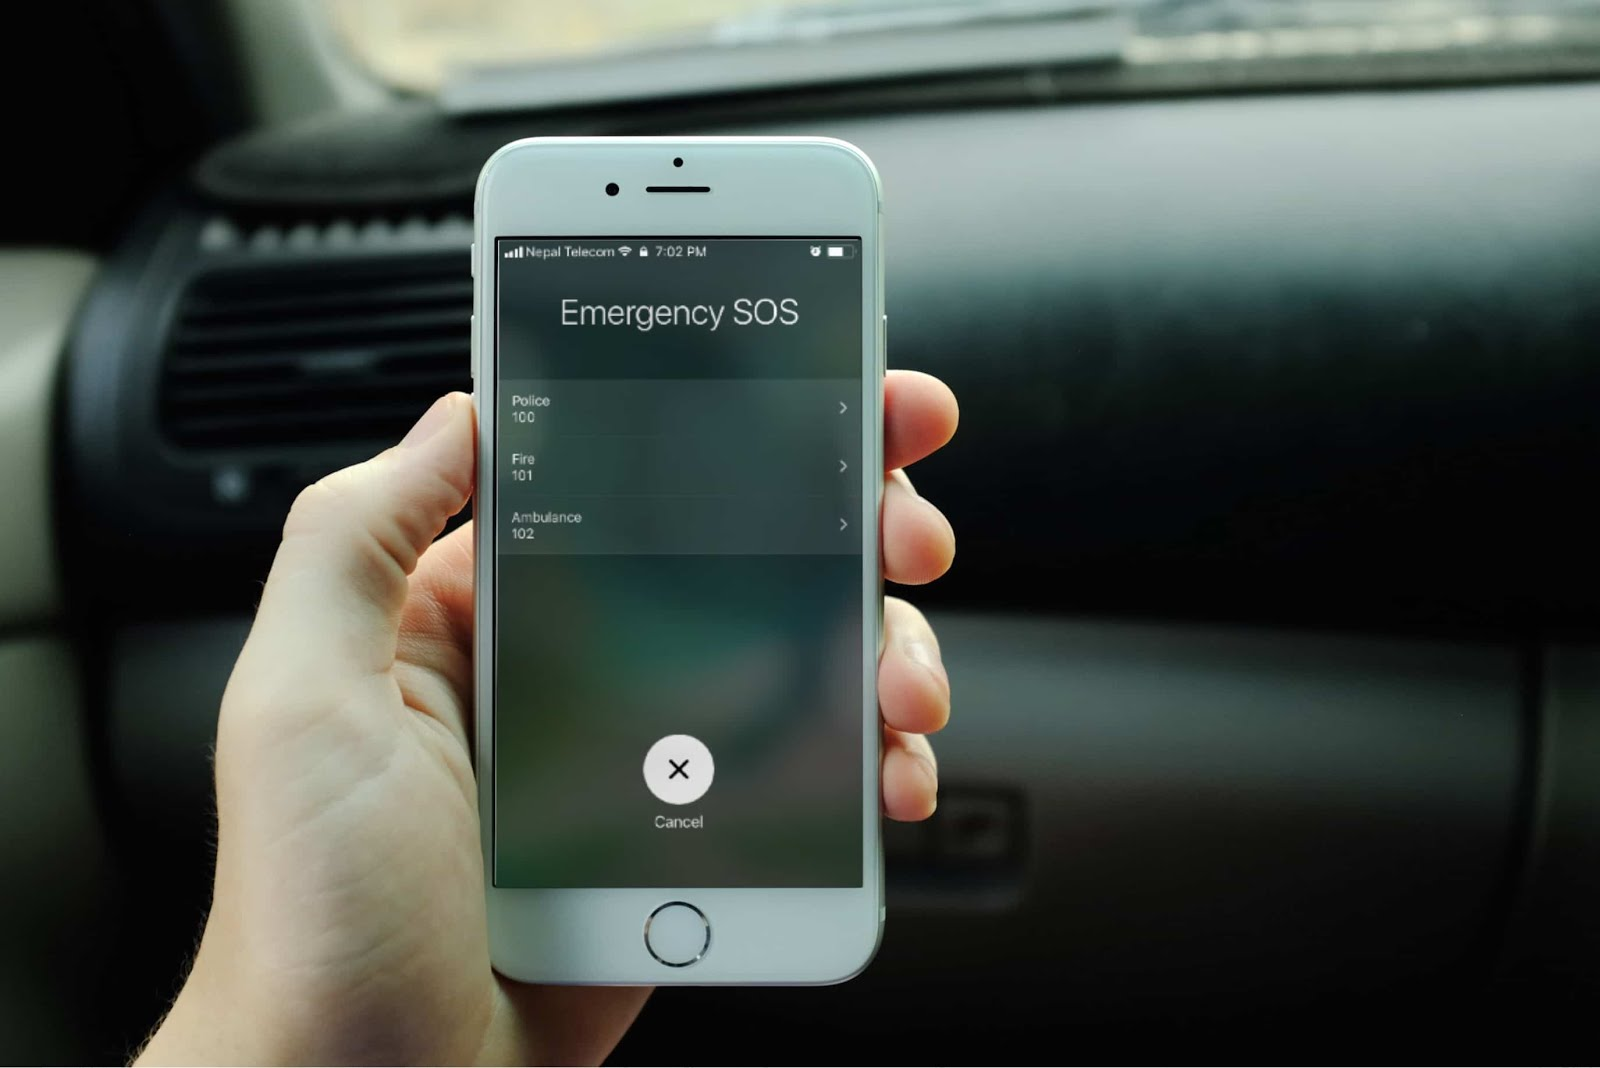 Here's a simple guide on how to quickly call emergency SOS number on iOS 11.This feature allows you to make an emergency SOS call to the police, fire...